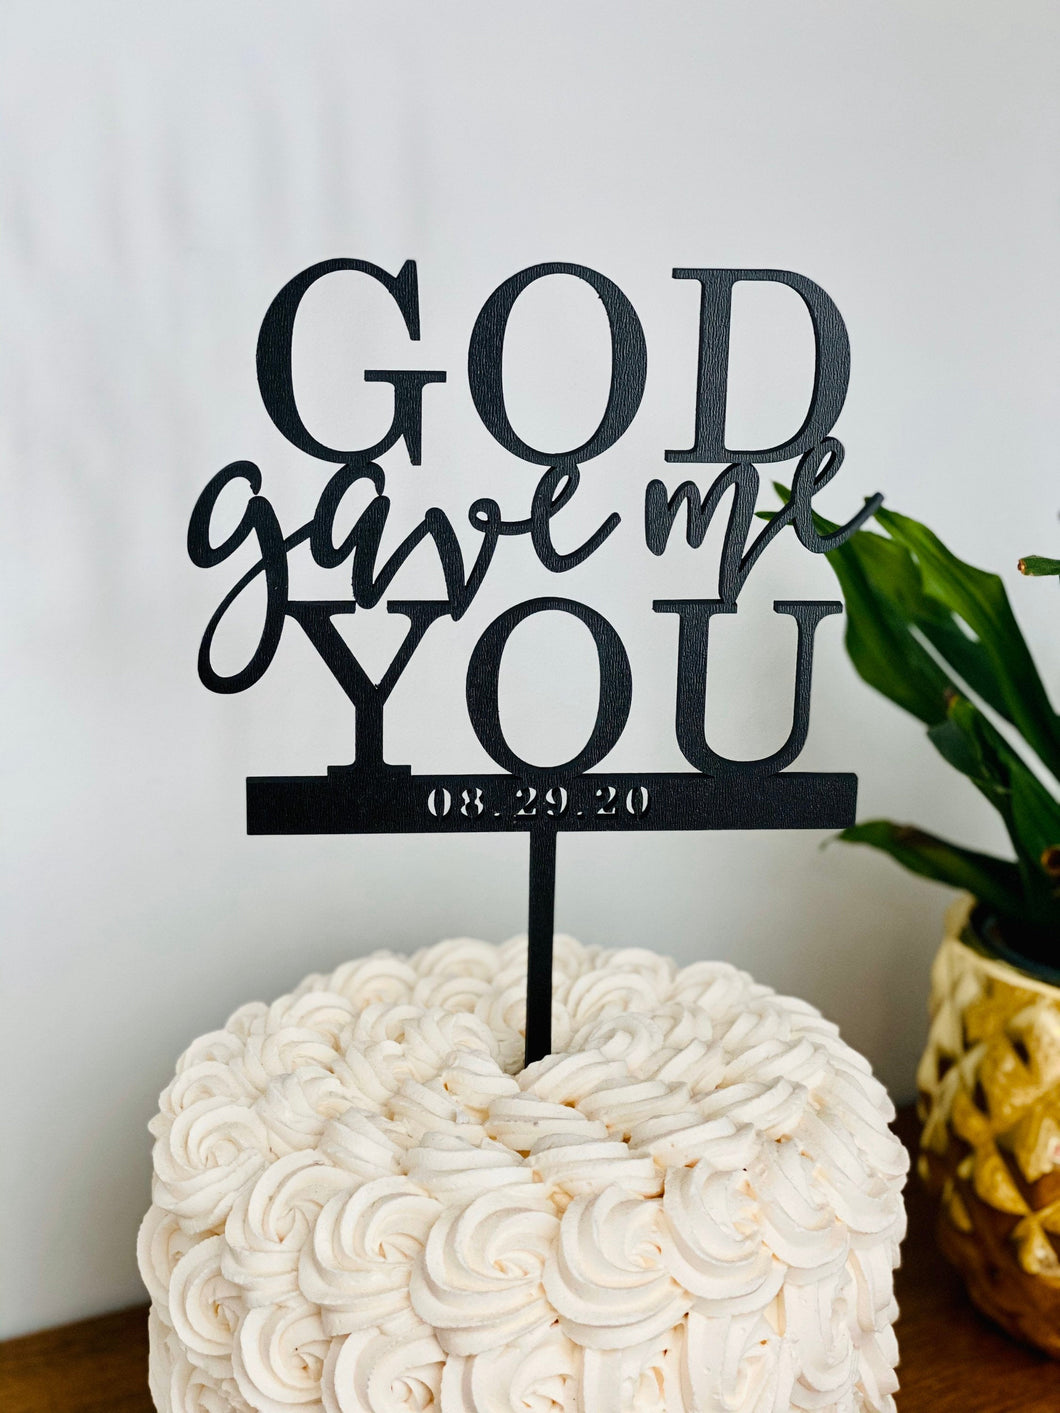 Personalized God Gave Me You Cake Topper with Date, 6